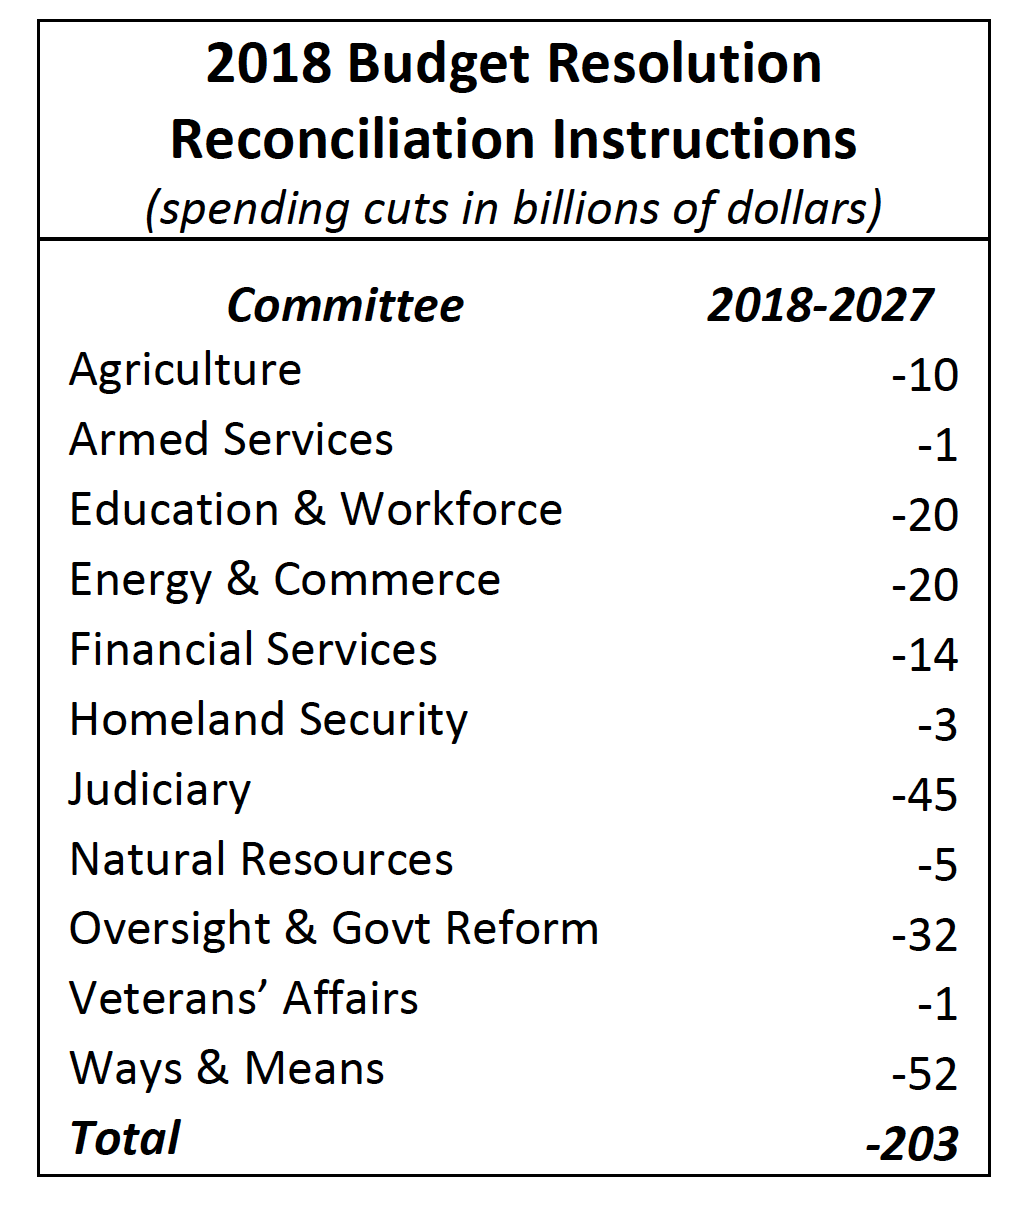 2018 Budget Resolution Reconciliation Instructions (spending cuts in billions of dollars)